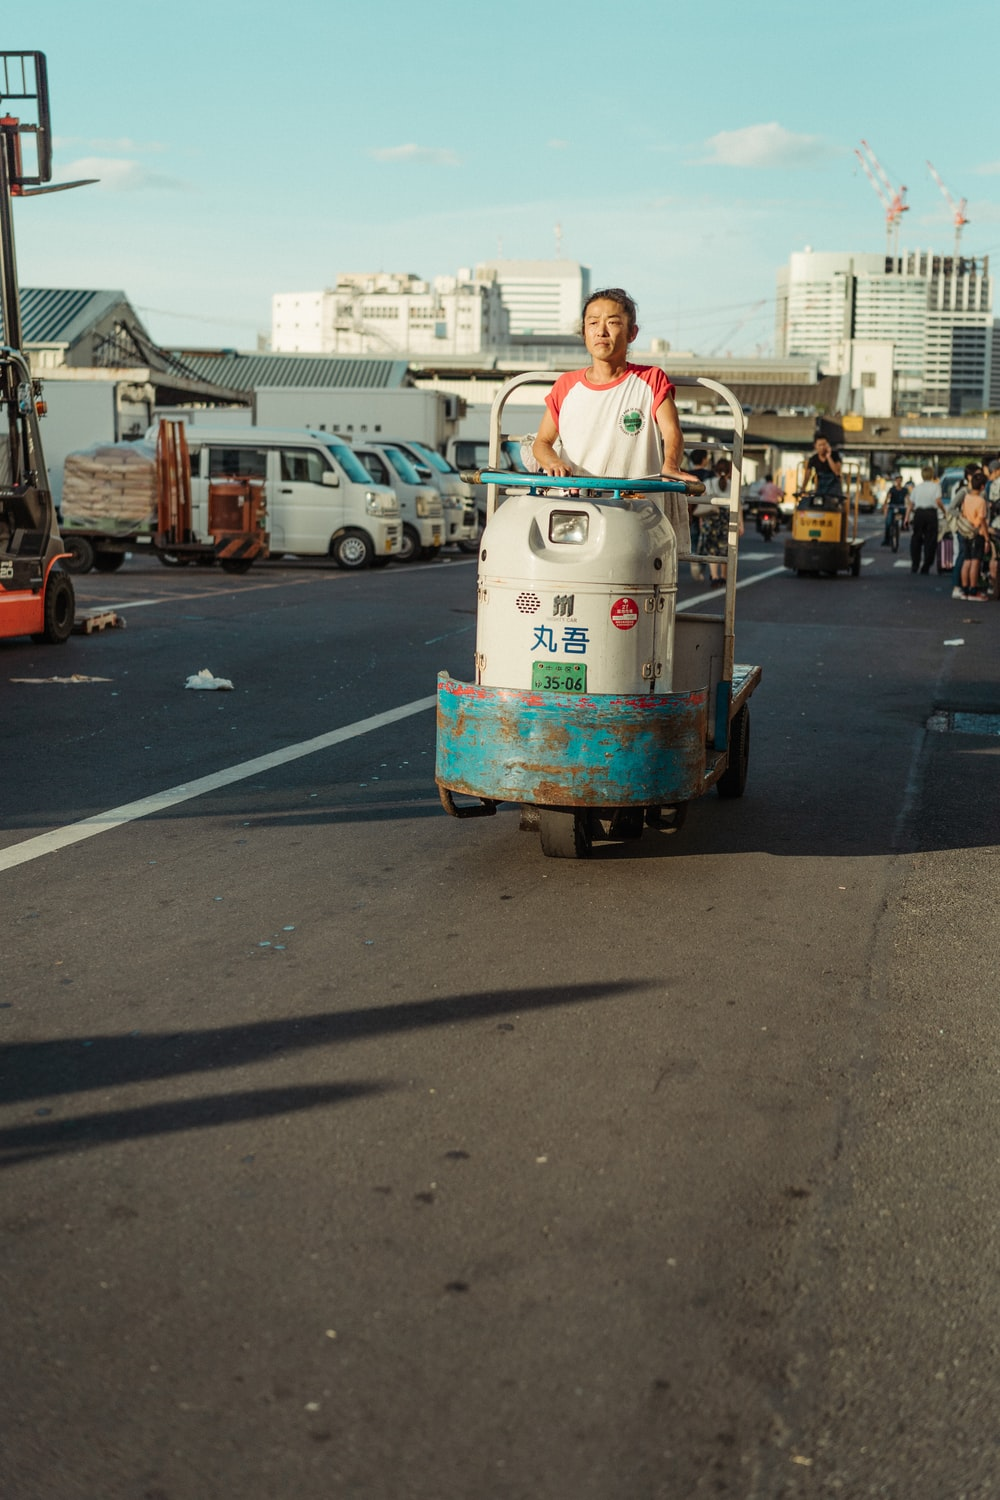 woman on cart on road